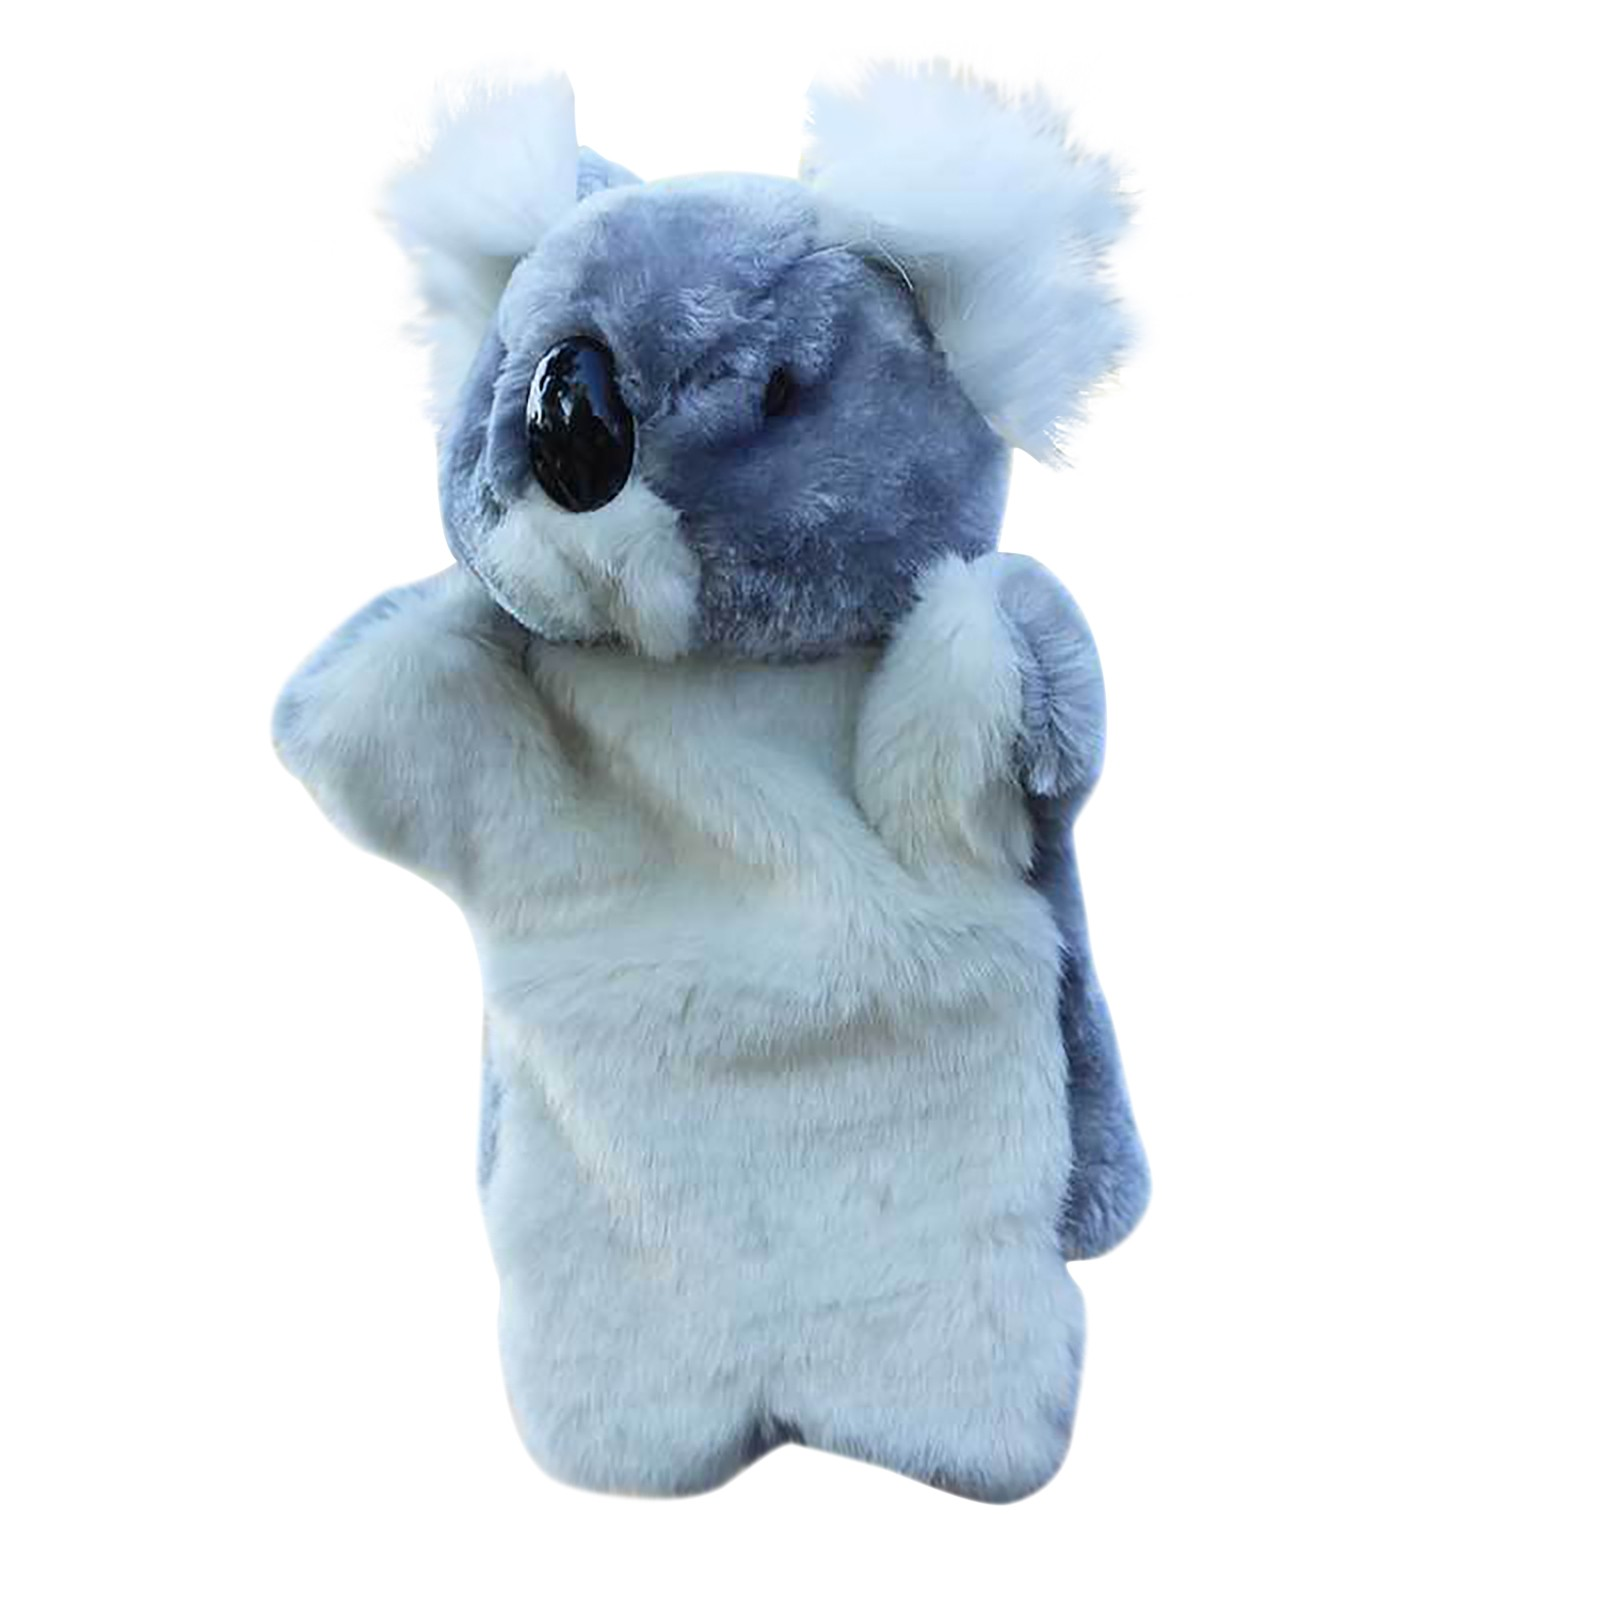 Cute Koala Animal Plush Hand Glove Puppet Role Play Story Telling Kids Toy Educatoinal Learning Baby Toy Plush Interactive Toys